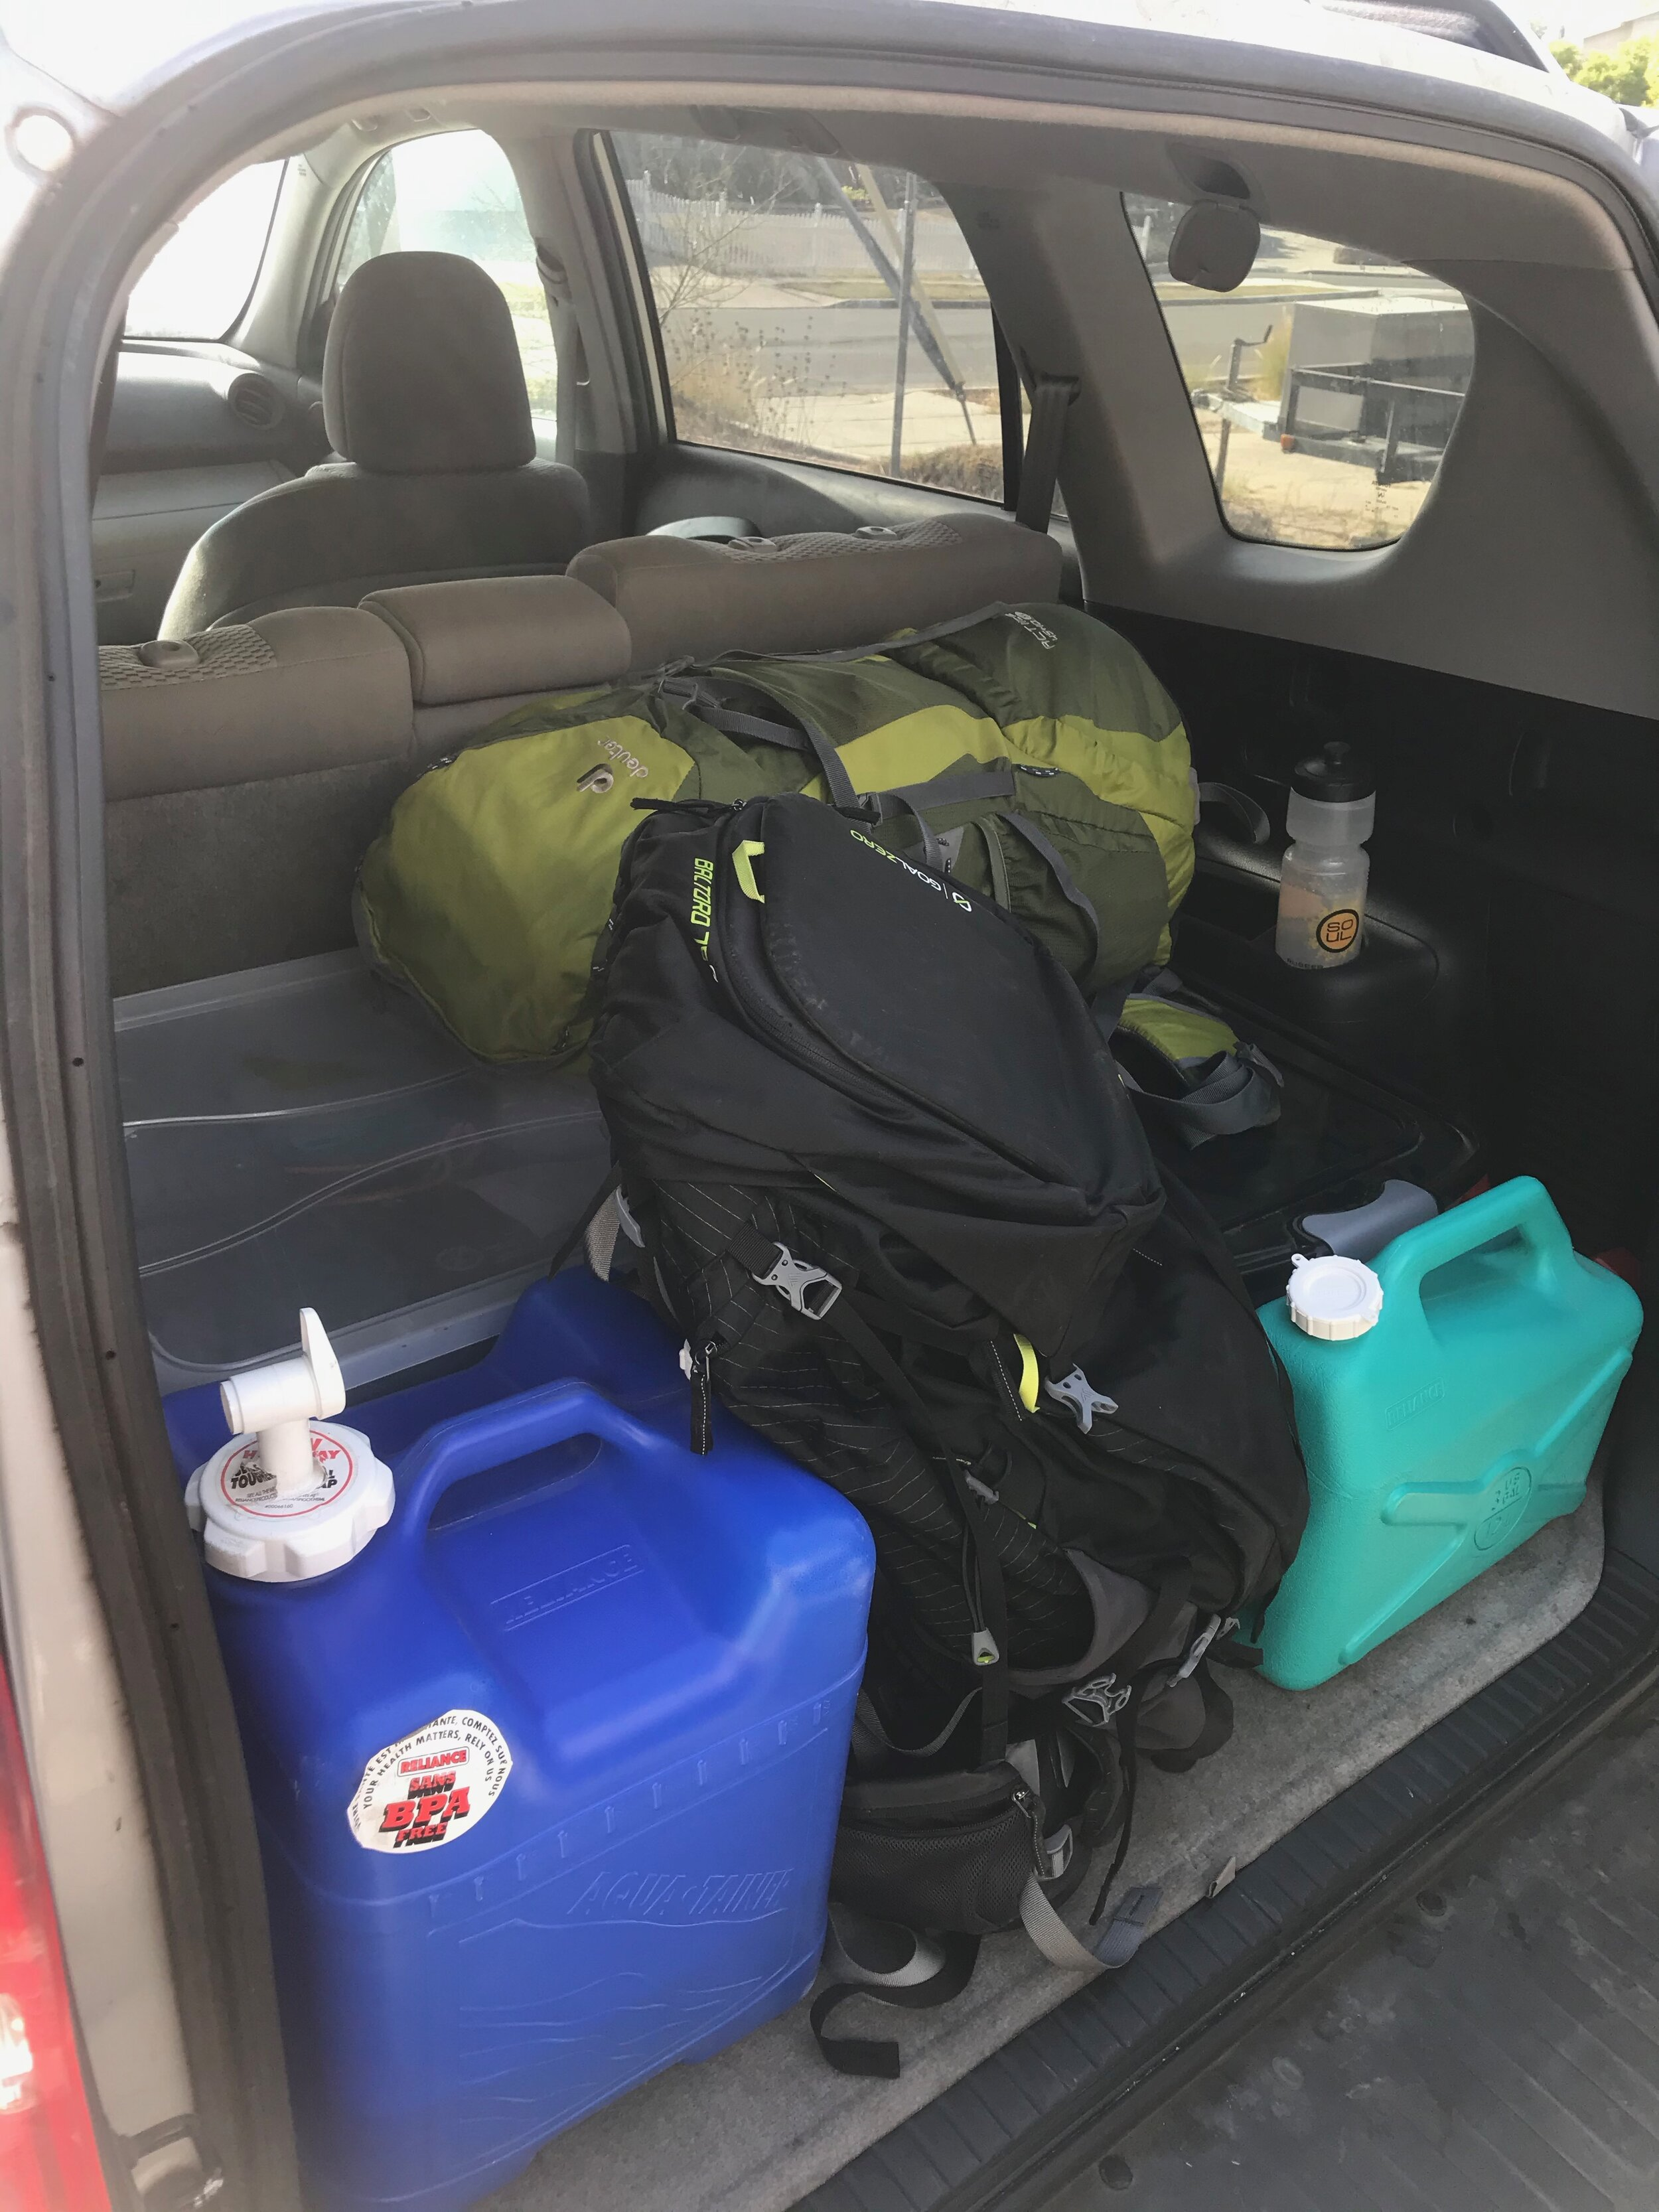 In the trunk we've got both of our 72-hour bags, 7- and 3- gallon water storage containers, the plastic tub of camping gear, and the plastic tub of medical supplies. It takes about 3 minutes to put in the car, and there is plenty of extra room.